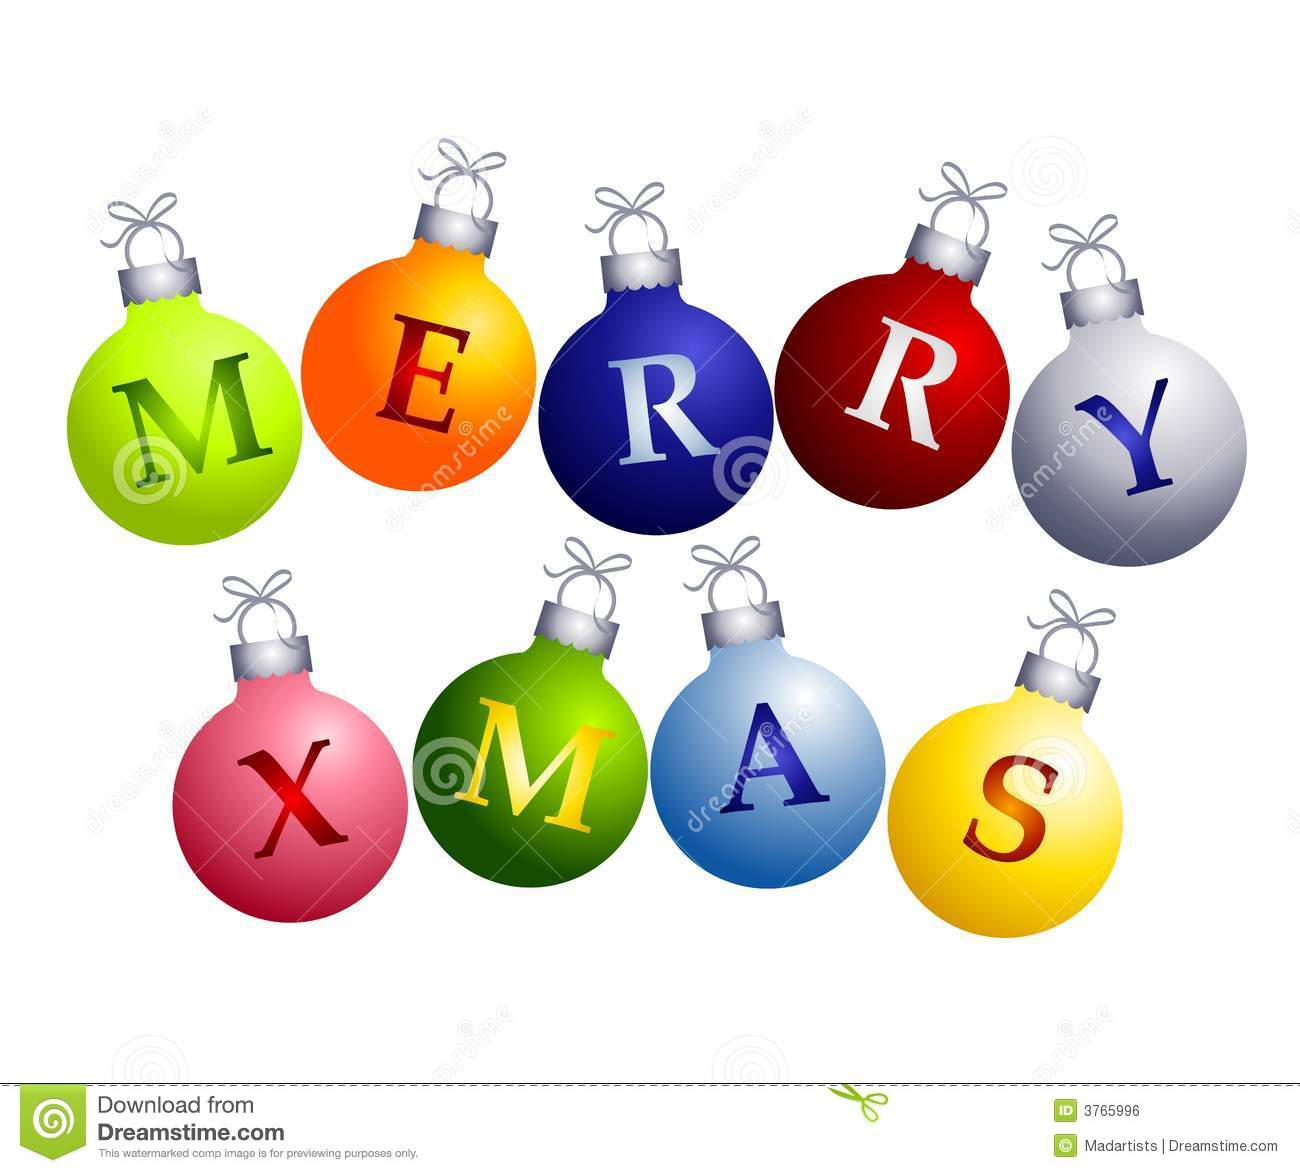 Merry Christmas Decorations merry christmas on ornaments royalty free stock image - image: 3765996